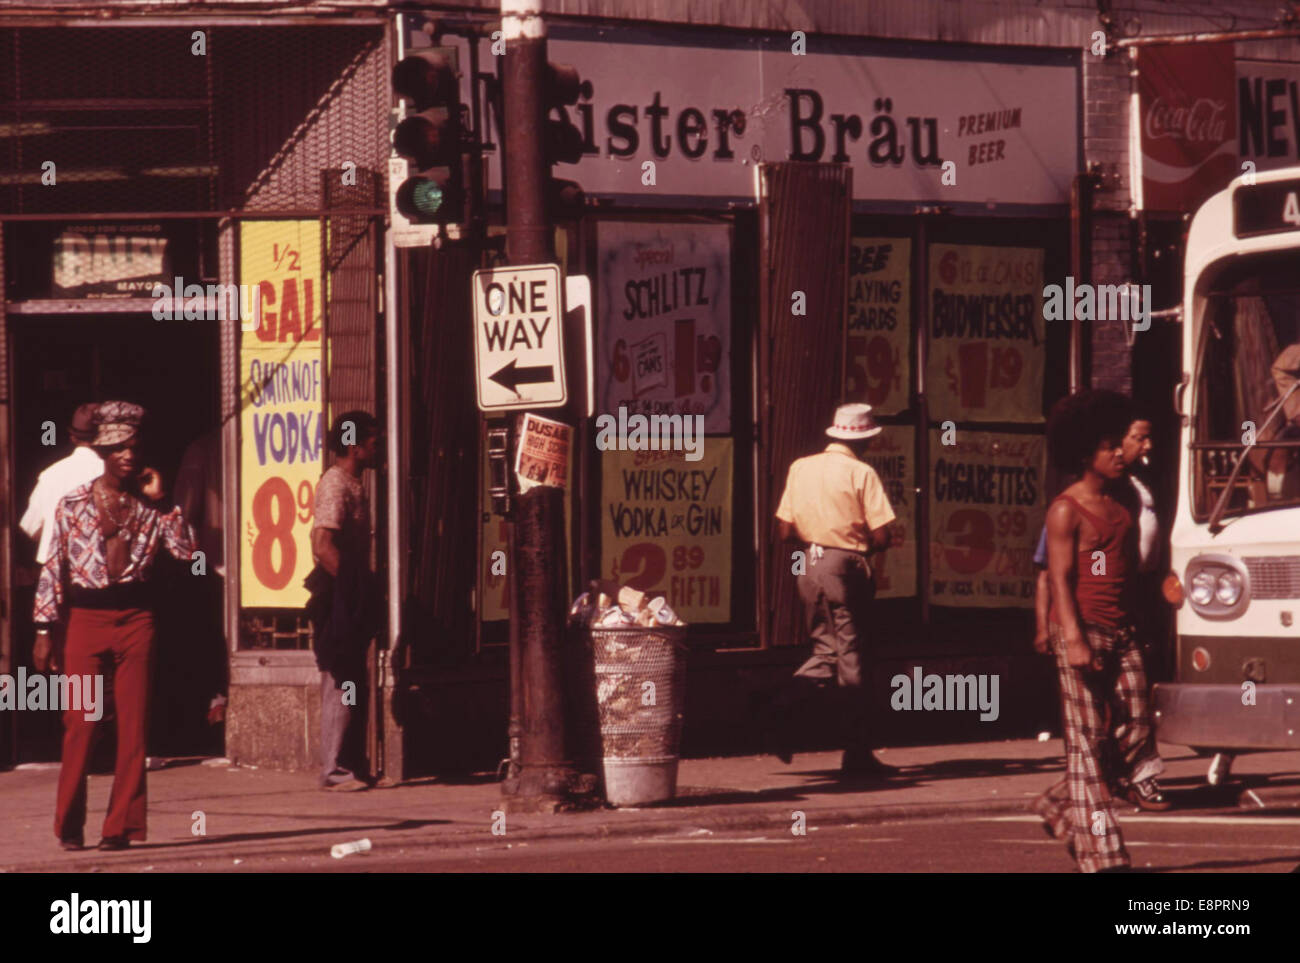 Street Scene On 47th Street In South Side Chicago A Busy Area Where Many Small Black Businesses Are Located 06/1973 - Stock Image